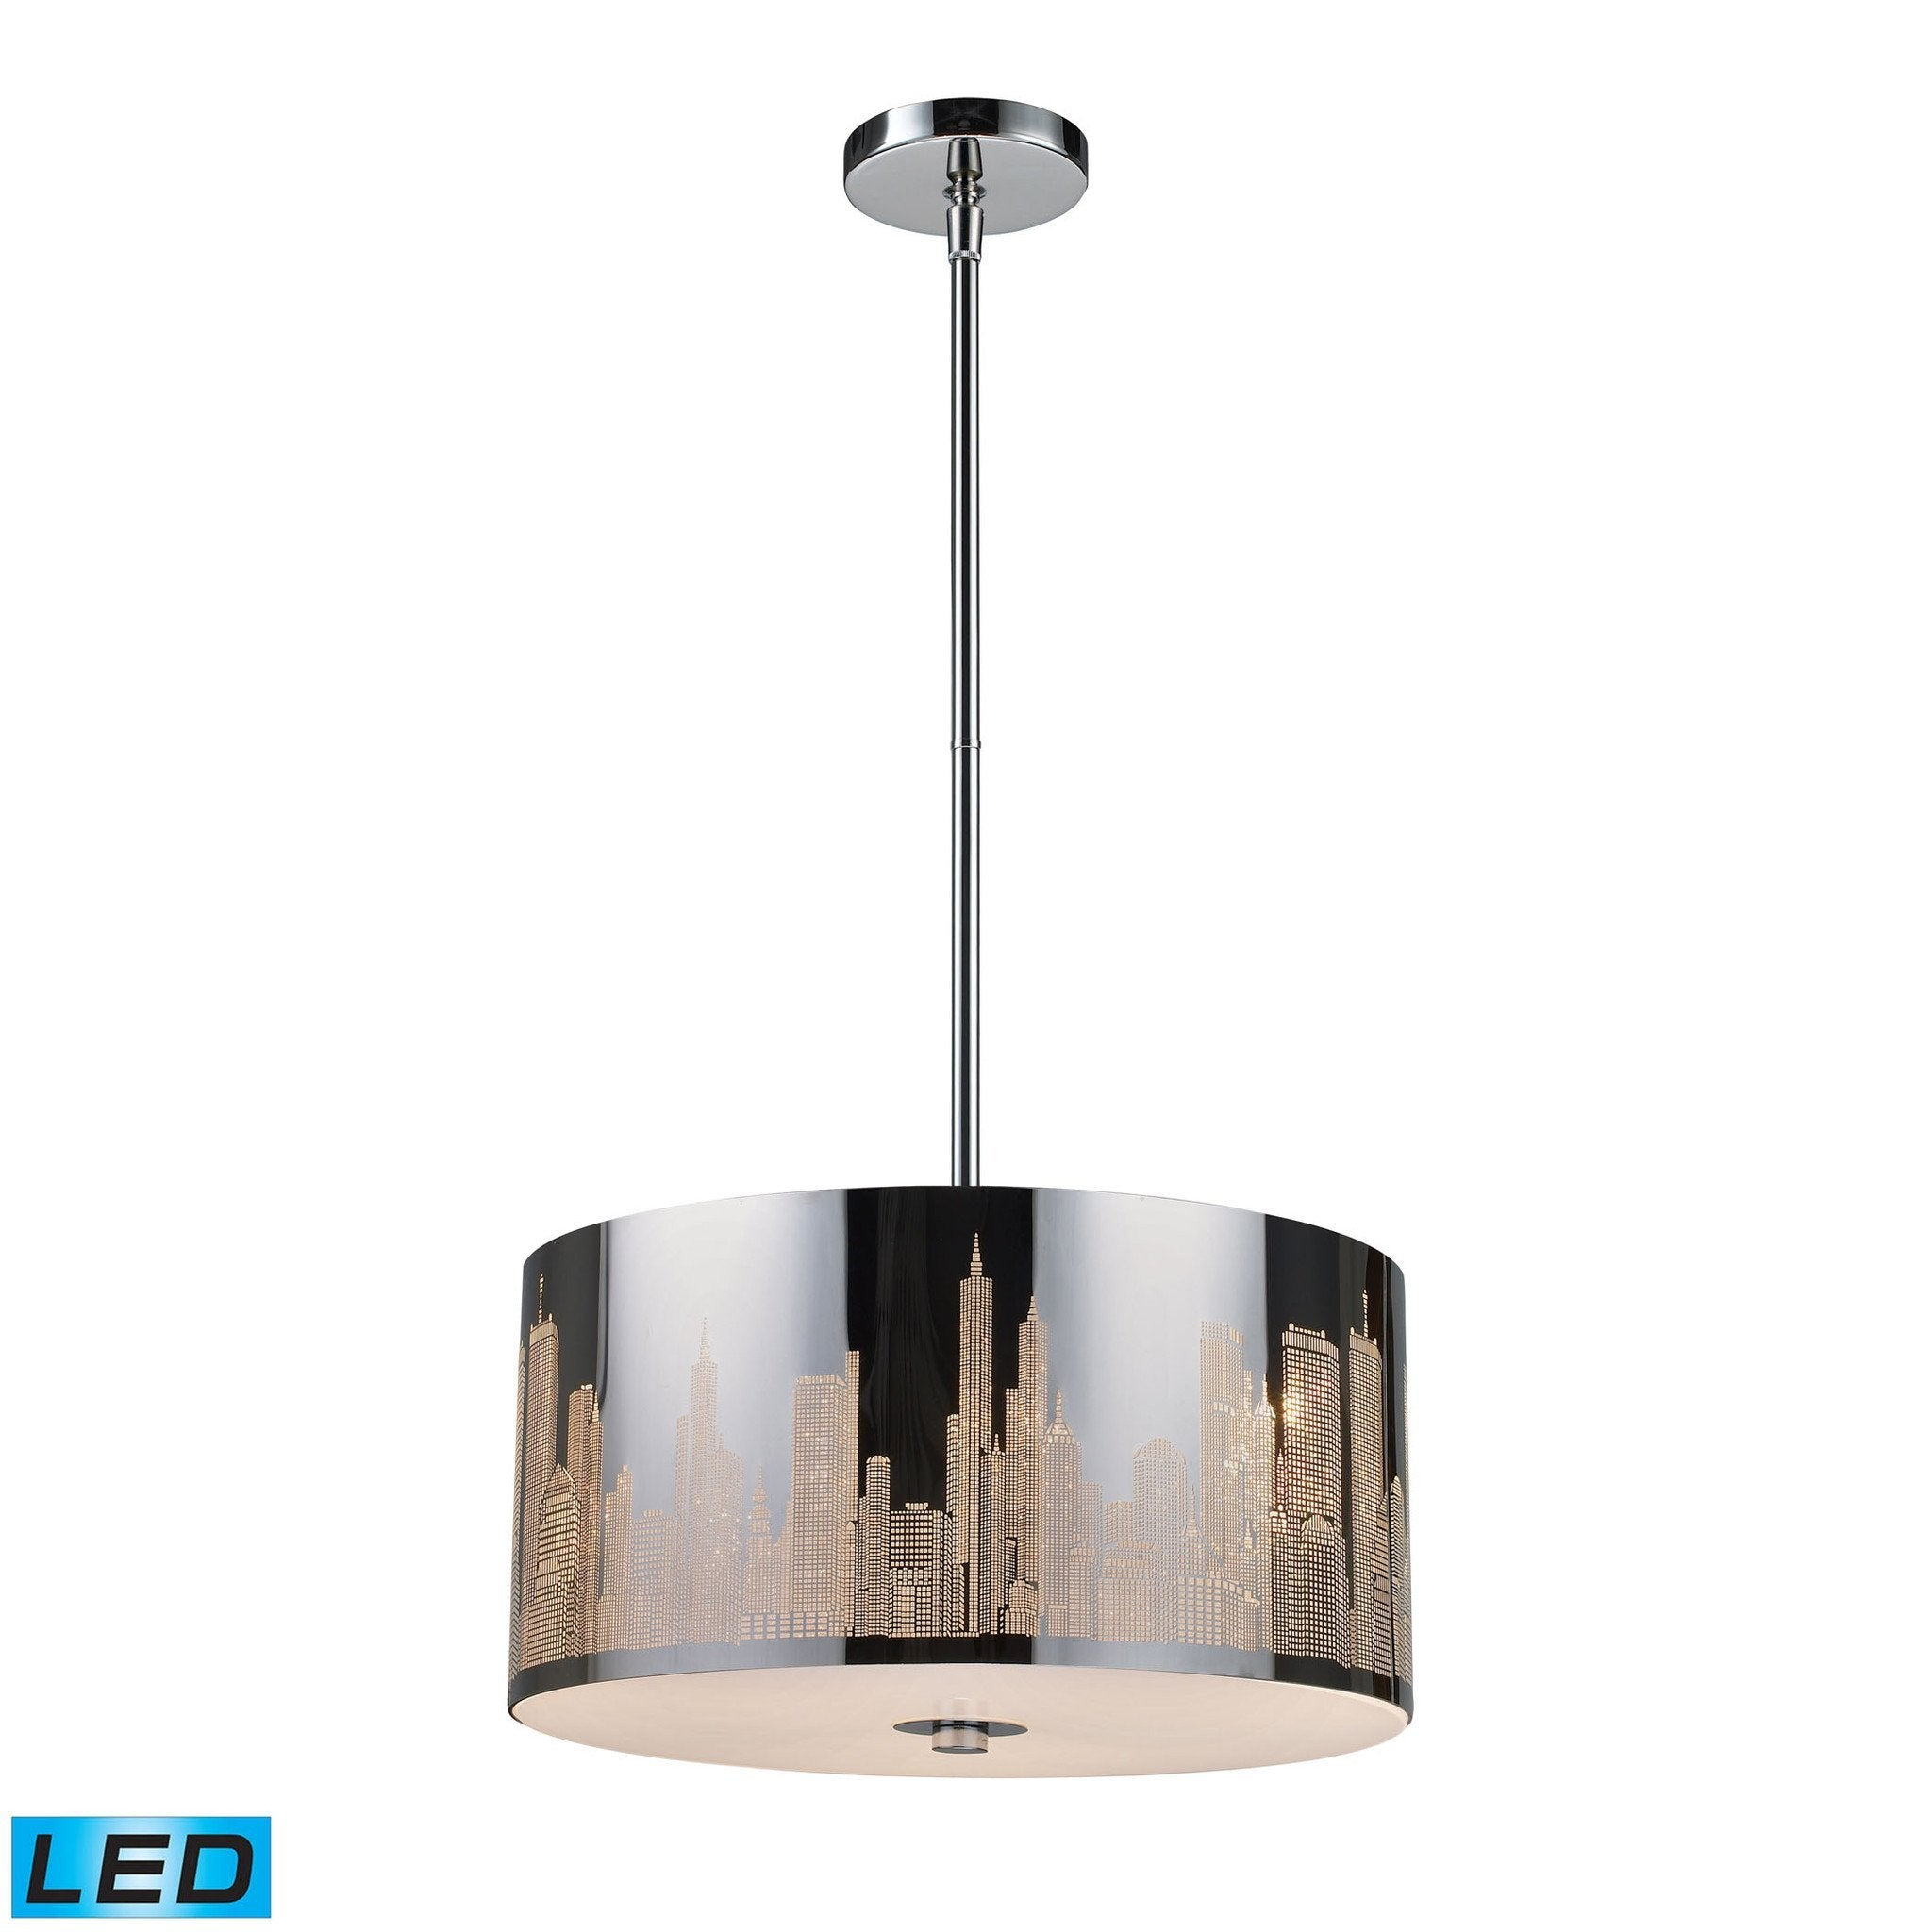 ELK Lighting 31038/3-LED Skyline Collection Polished Stainless Steel Finish